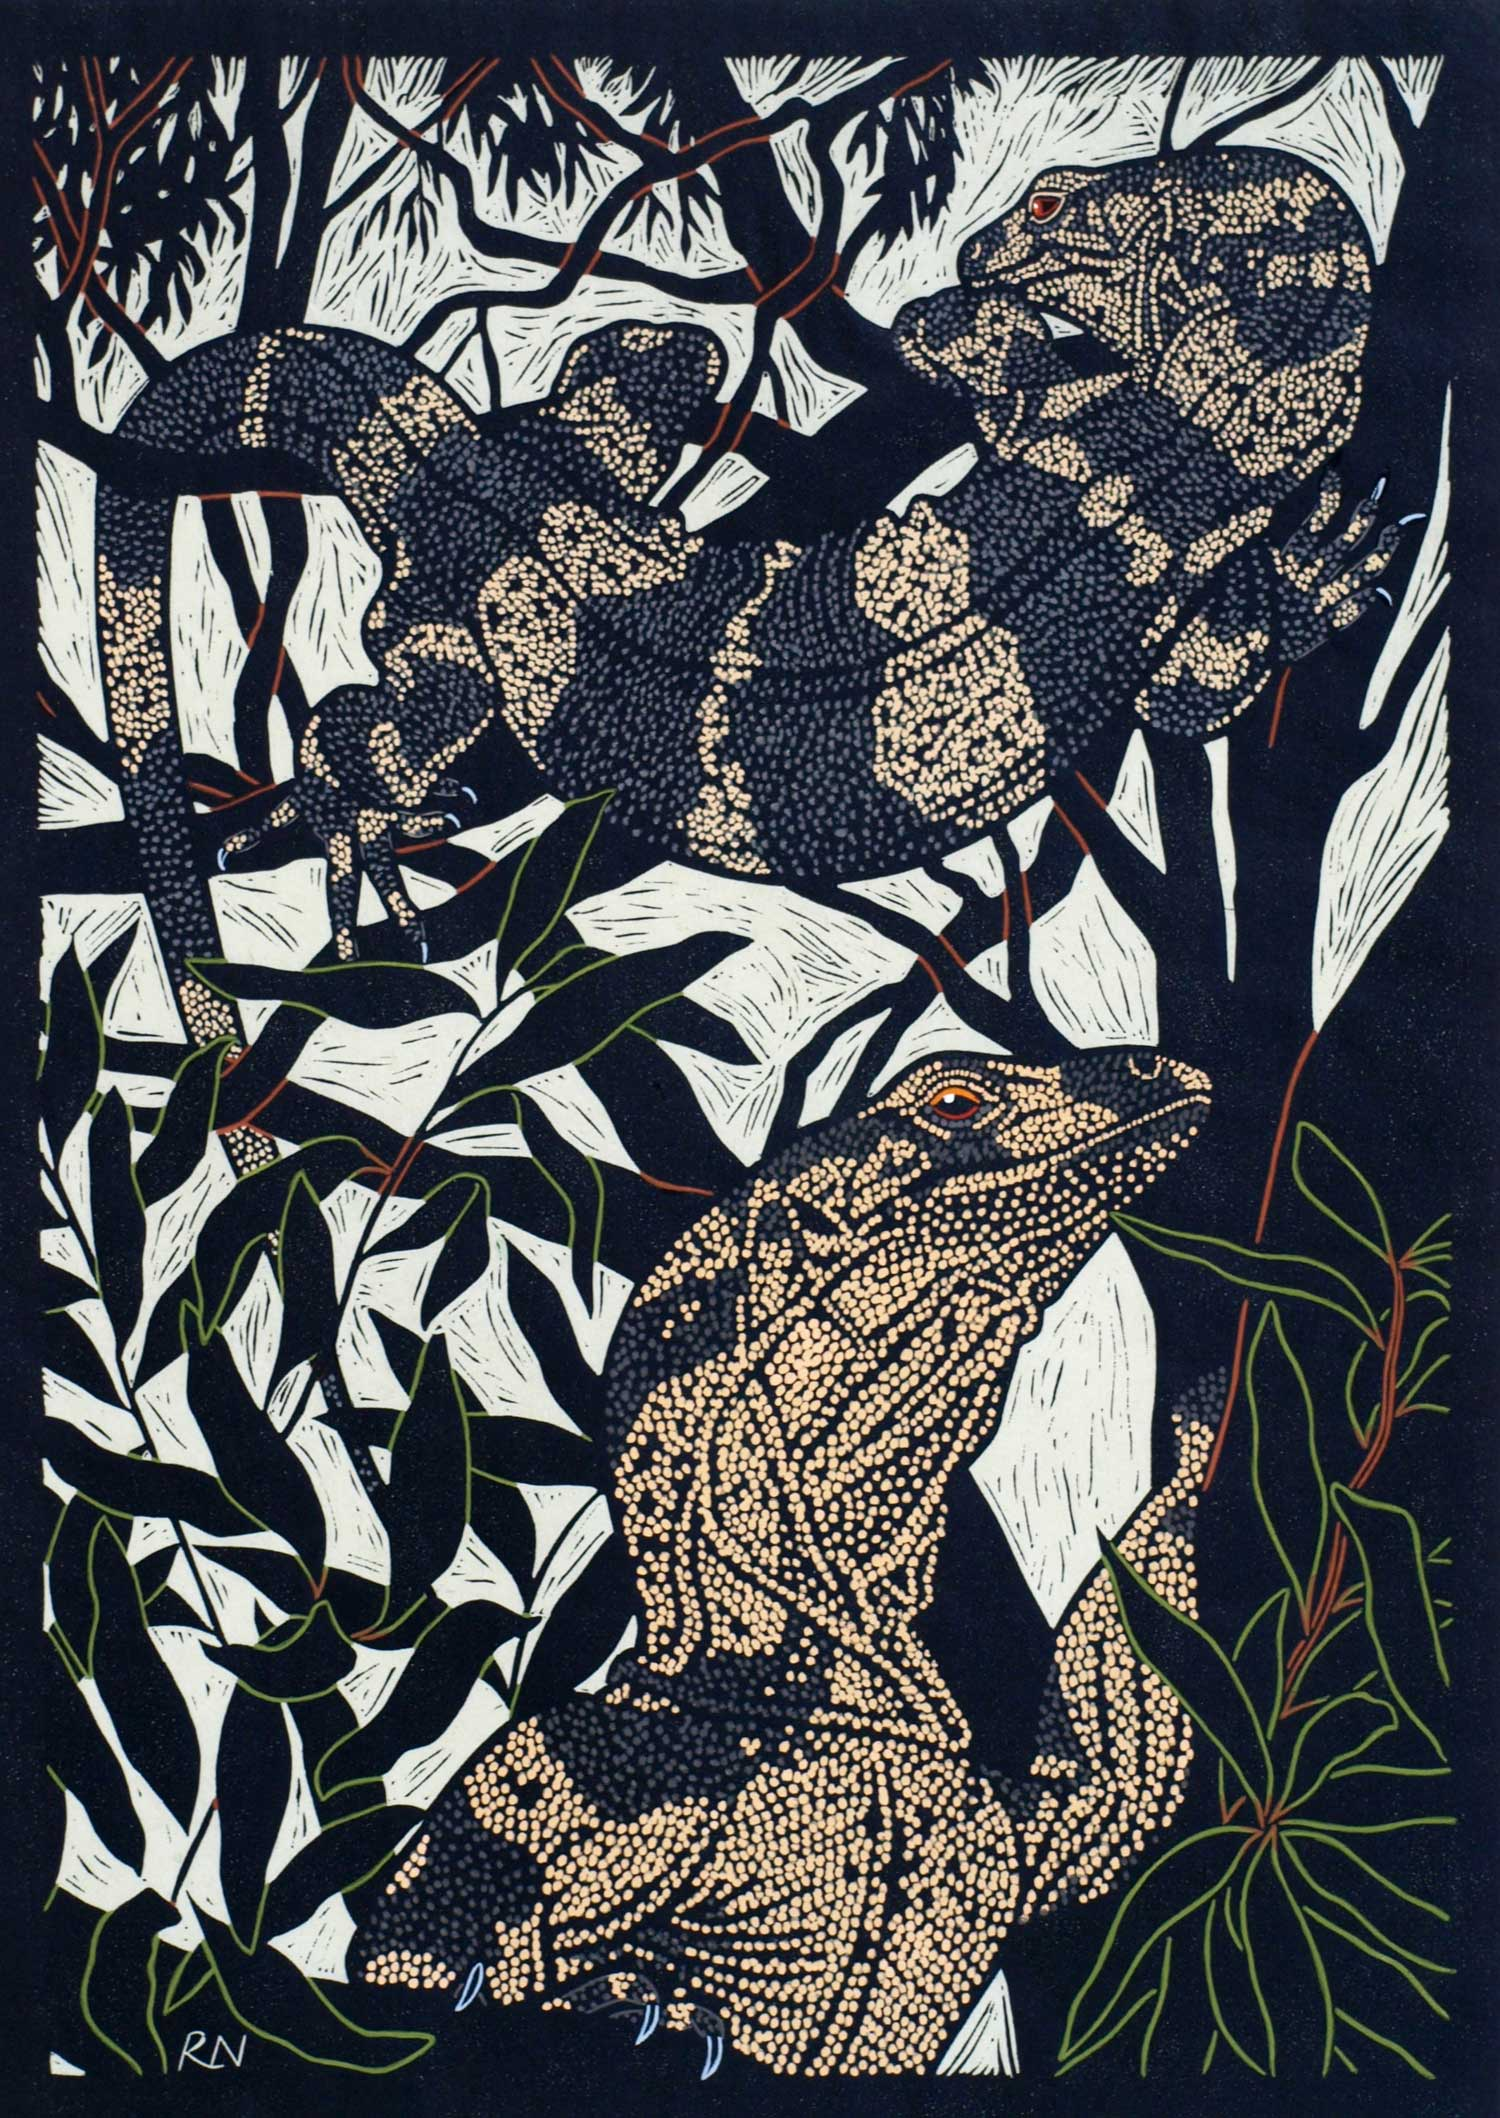 LACE MONITOR  49.5 X 35 CM, EDITION OF 50  HAND-COLOURED LINOCUT ON HANDMADE JAPANESE PAPER  $1,100